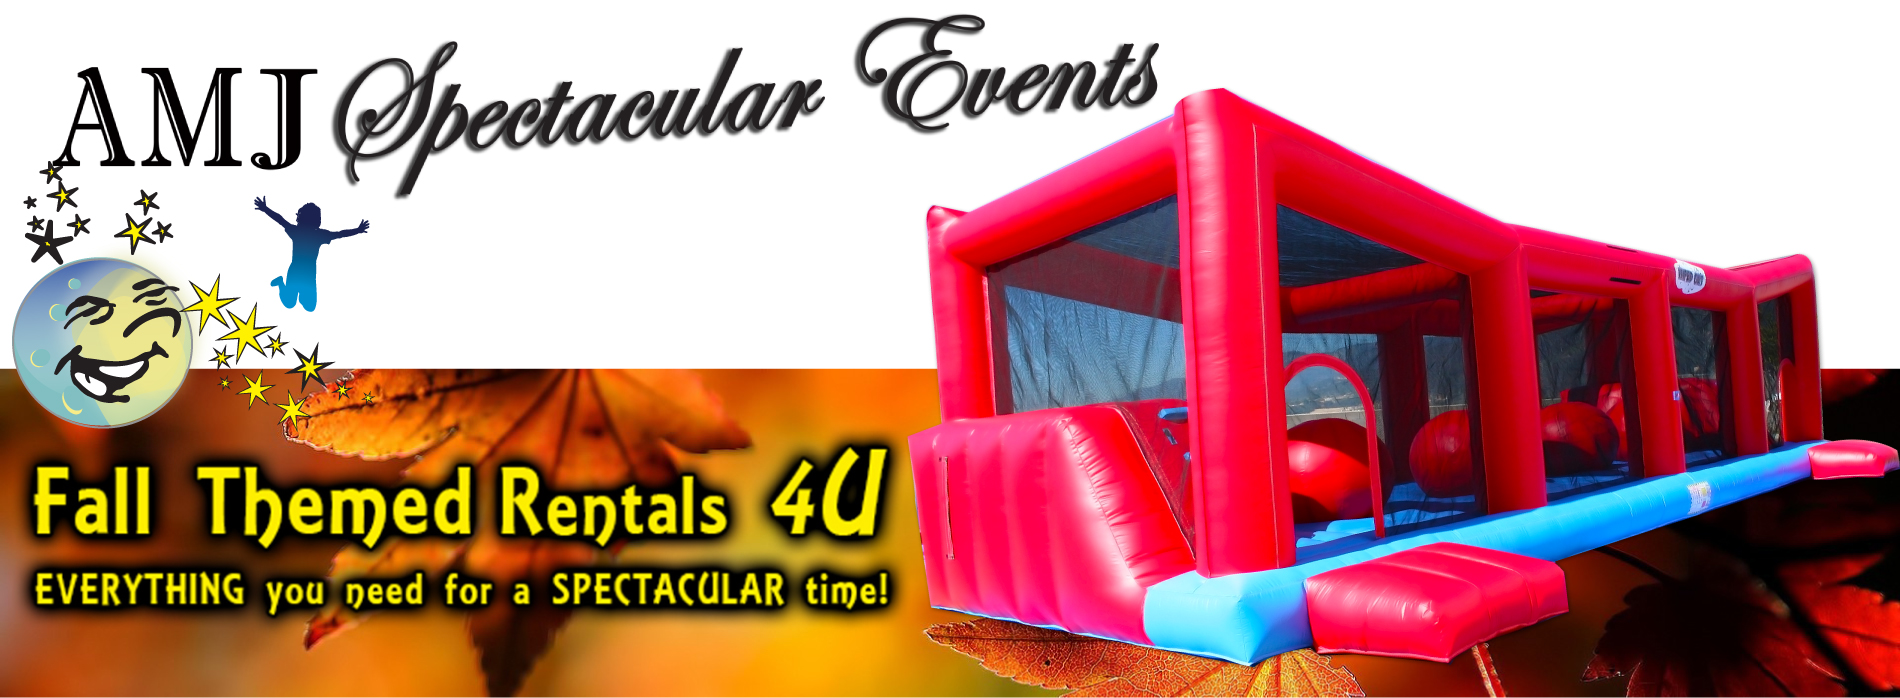 AMJ Spectacular Events Fall Event Party Rentals